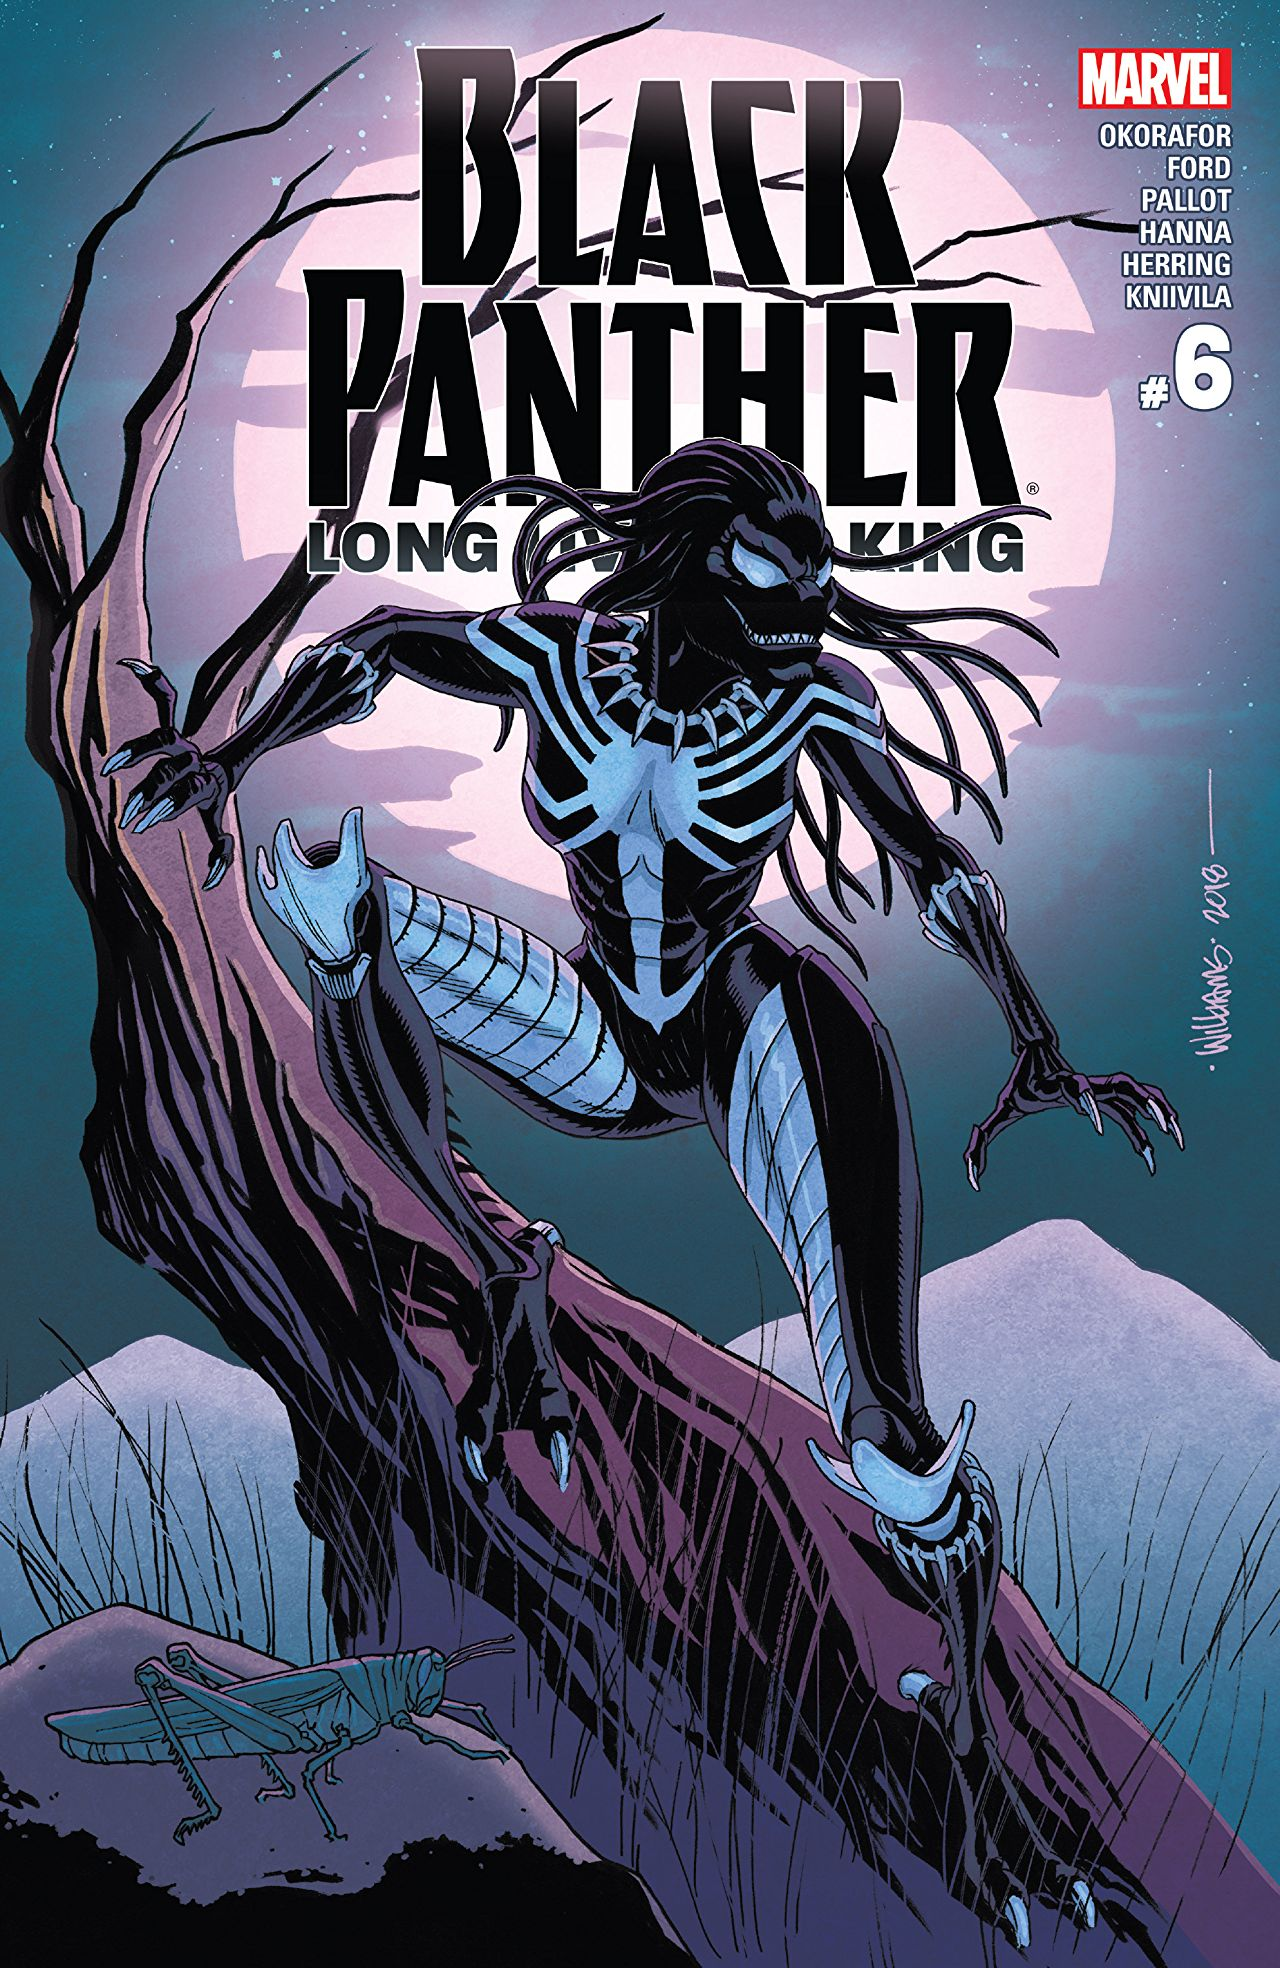 Black Panther: Long Live The King Vol 1 6